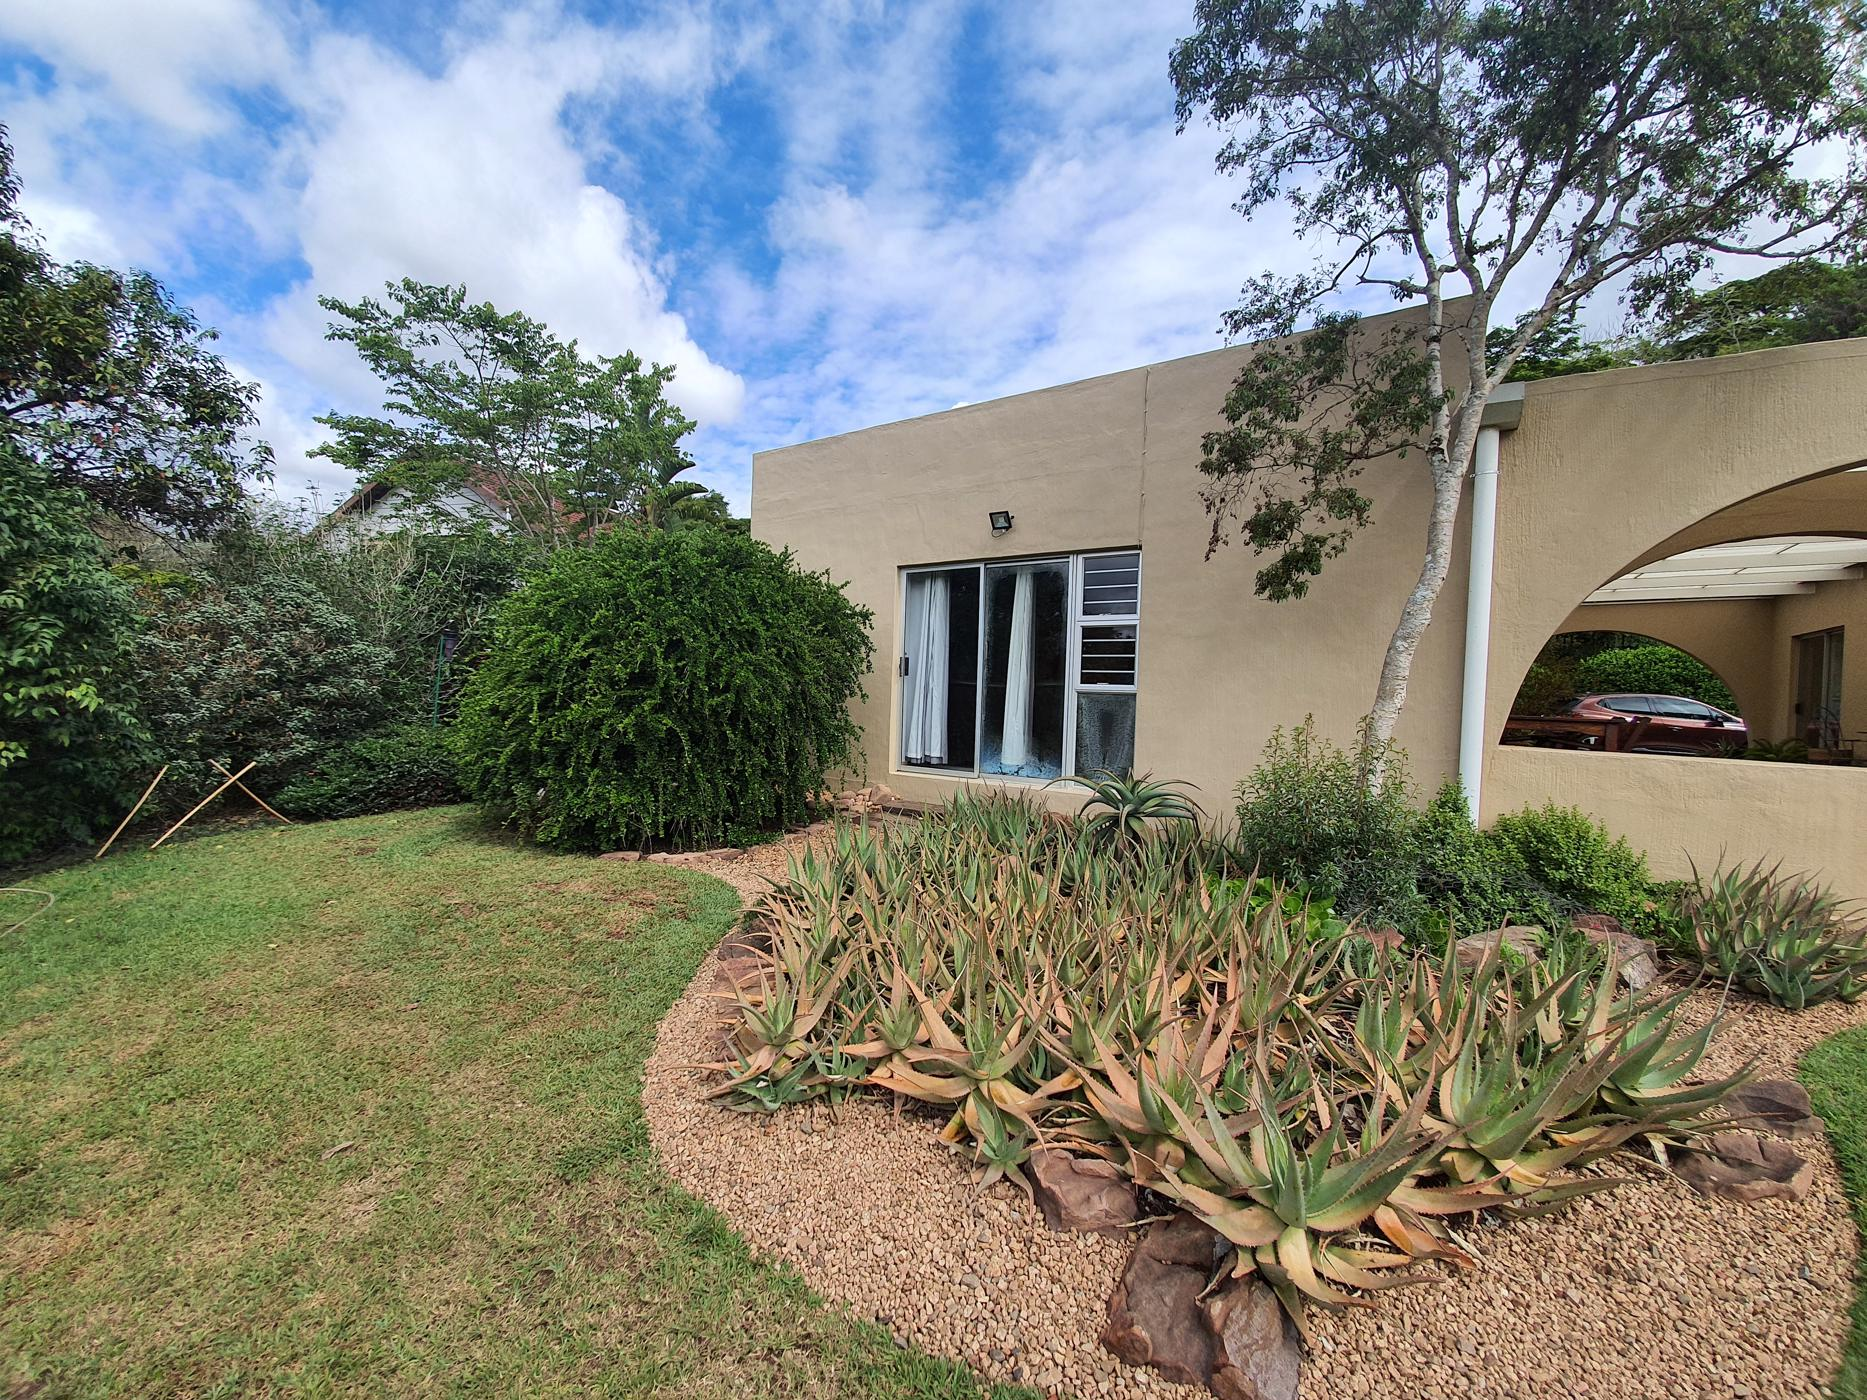 https://listing.pamgolding.co.za/images/properties/201910/1525753/H/1525753_H_20.jpg